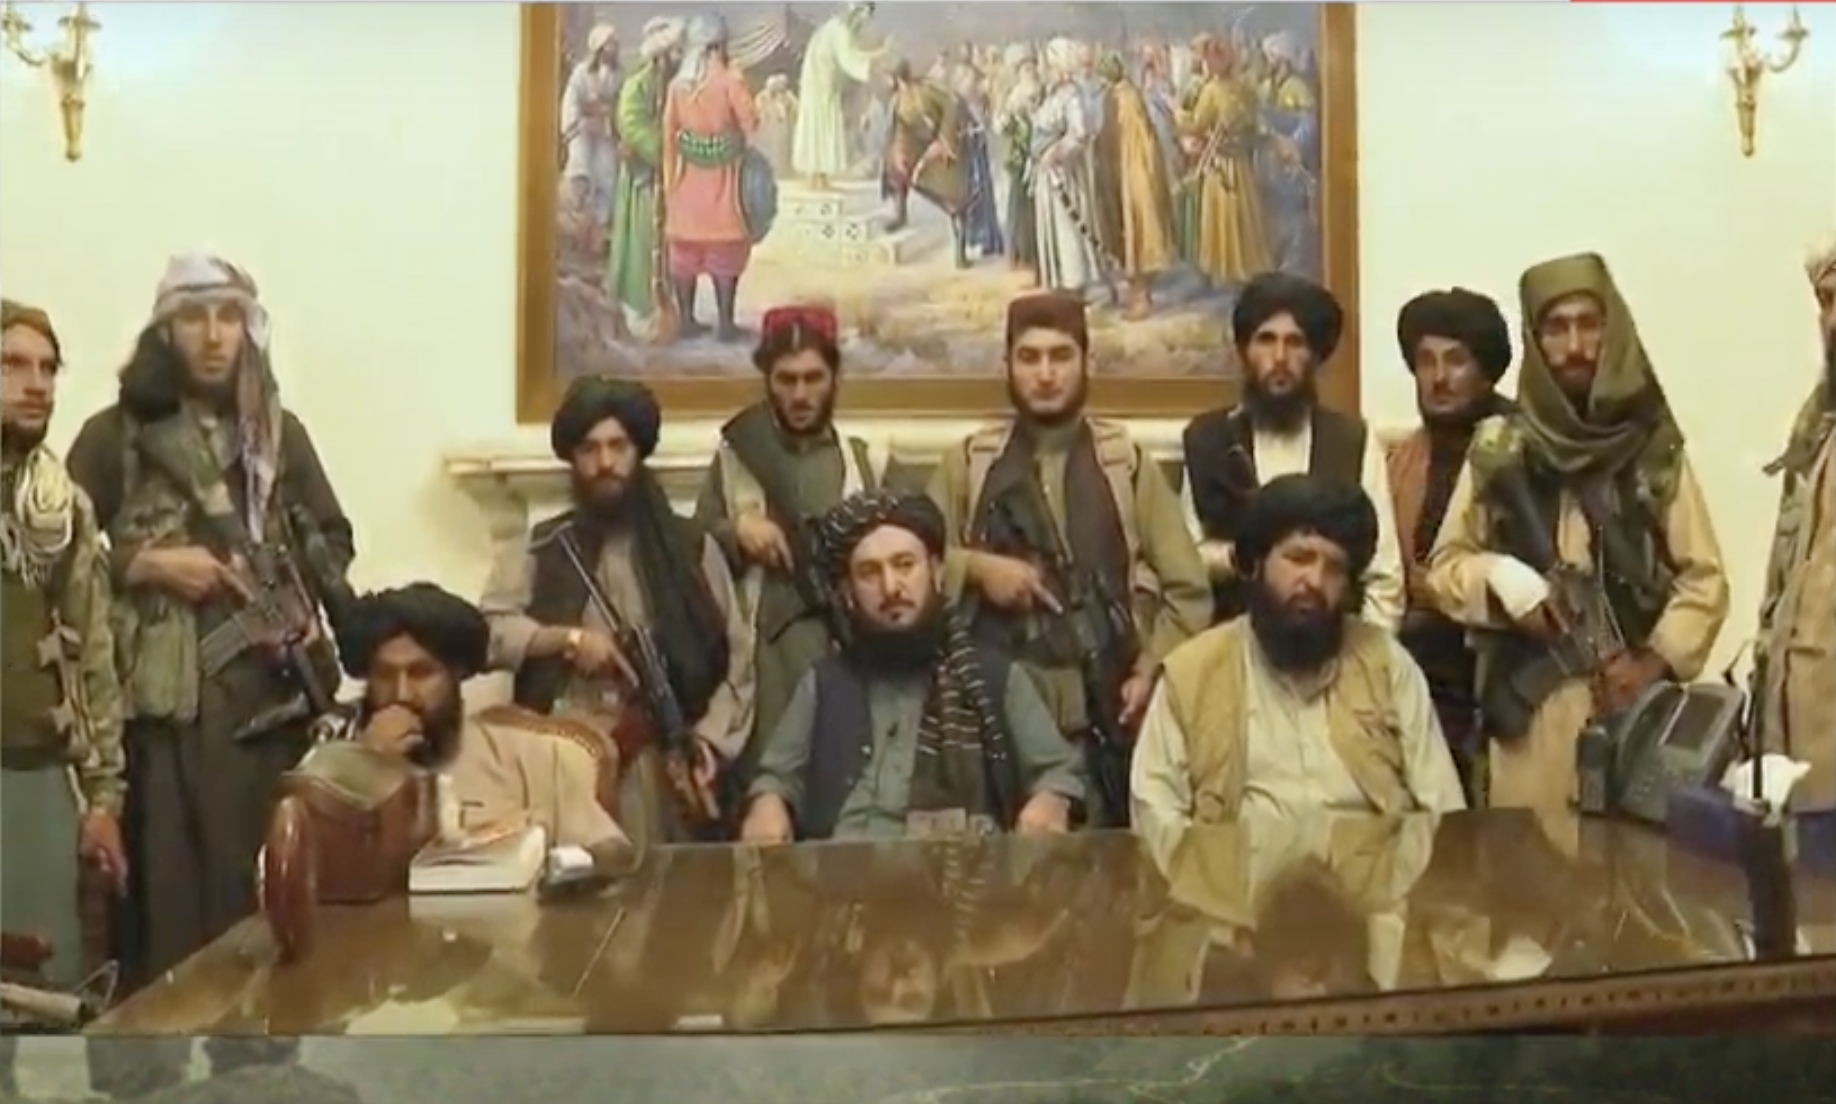 Talibans at the Presidential Palace, Aug 2021